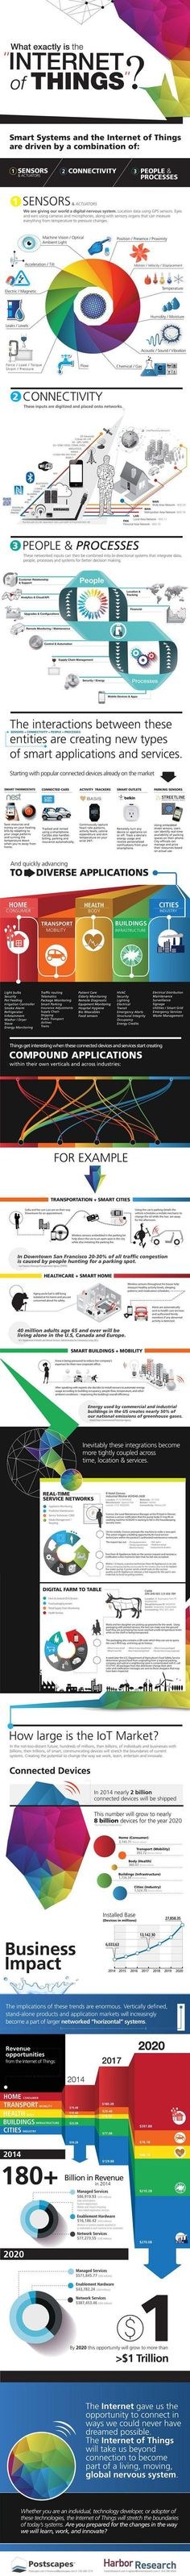 What Exactly is the Internet of Things? [infographic]